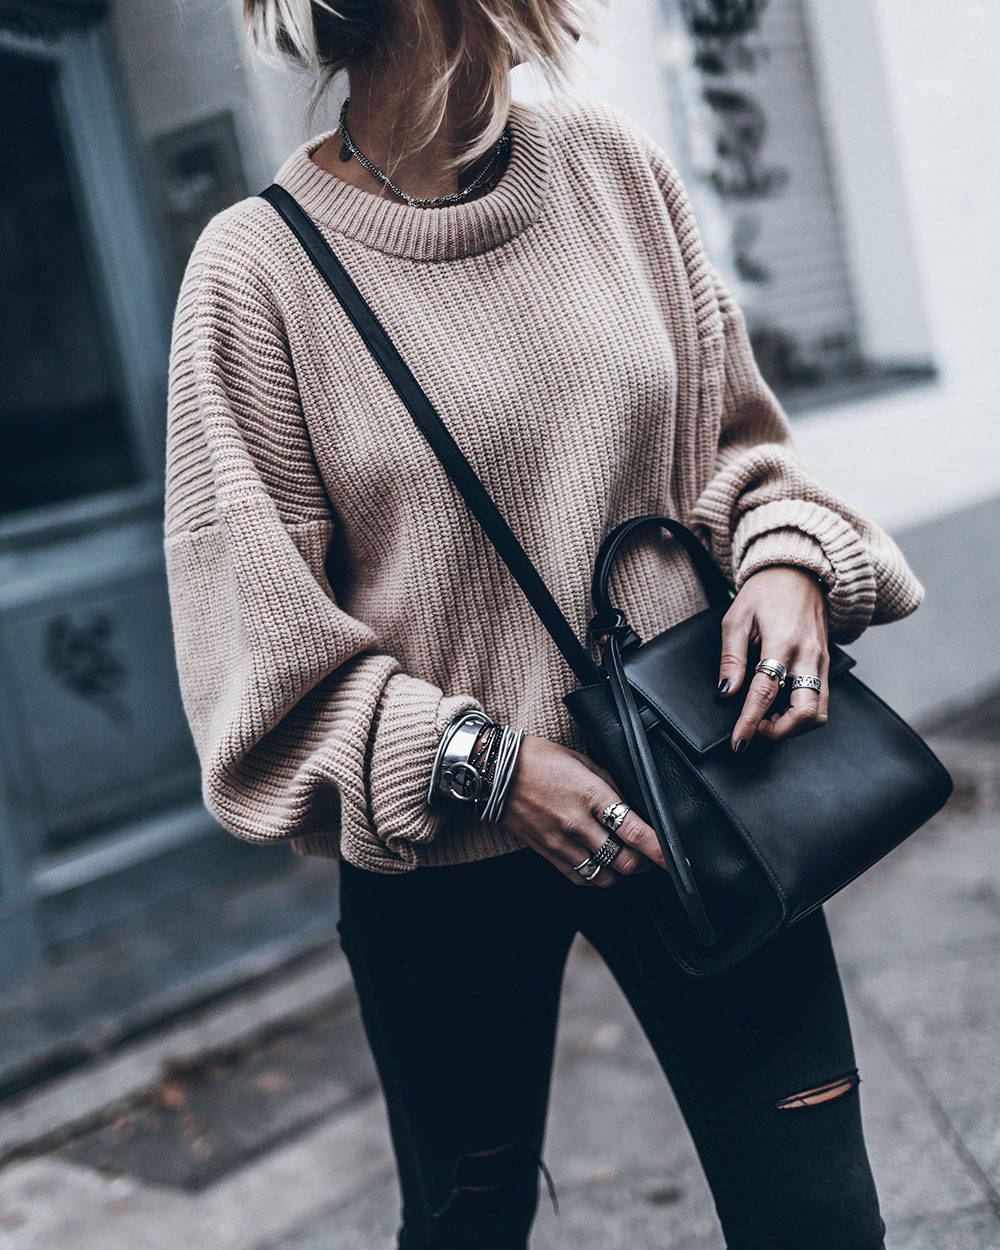 Black trendy clothing ideas with sweater, tights